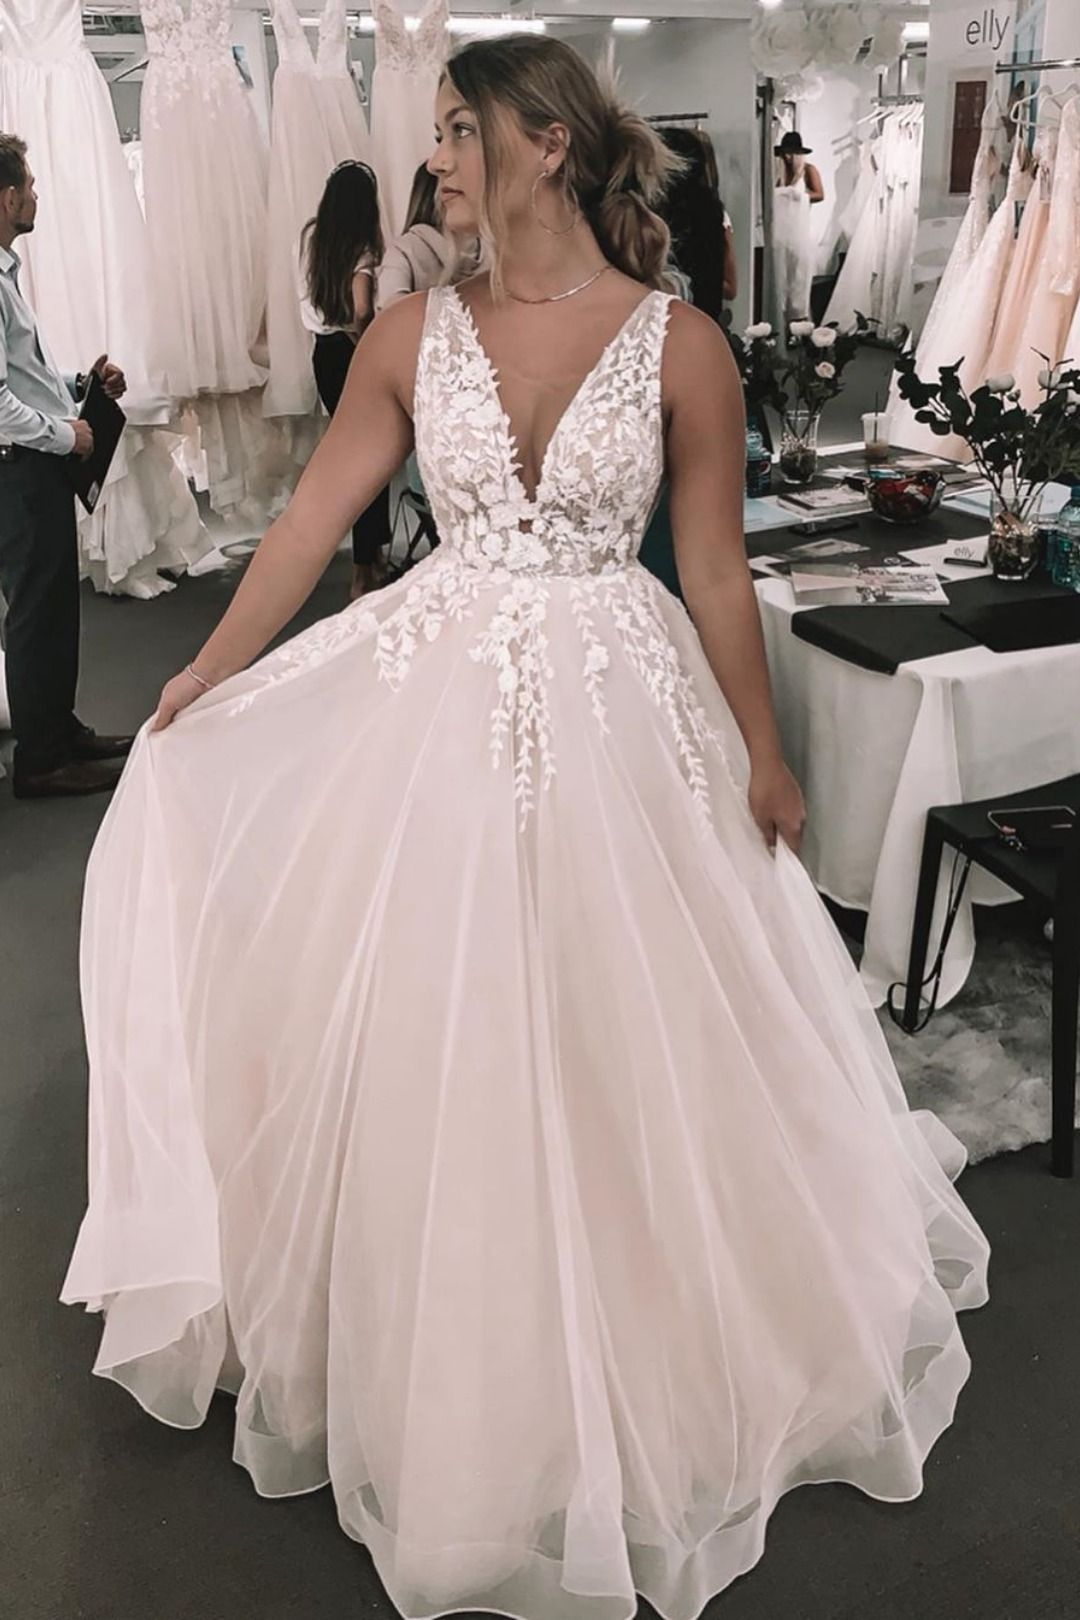 Pin On Prom Dresses 2019